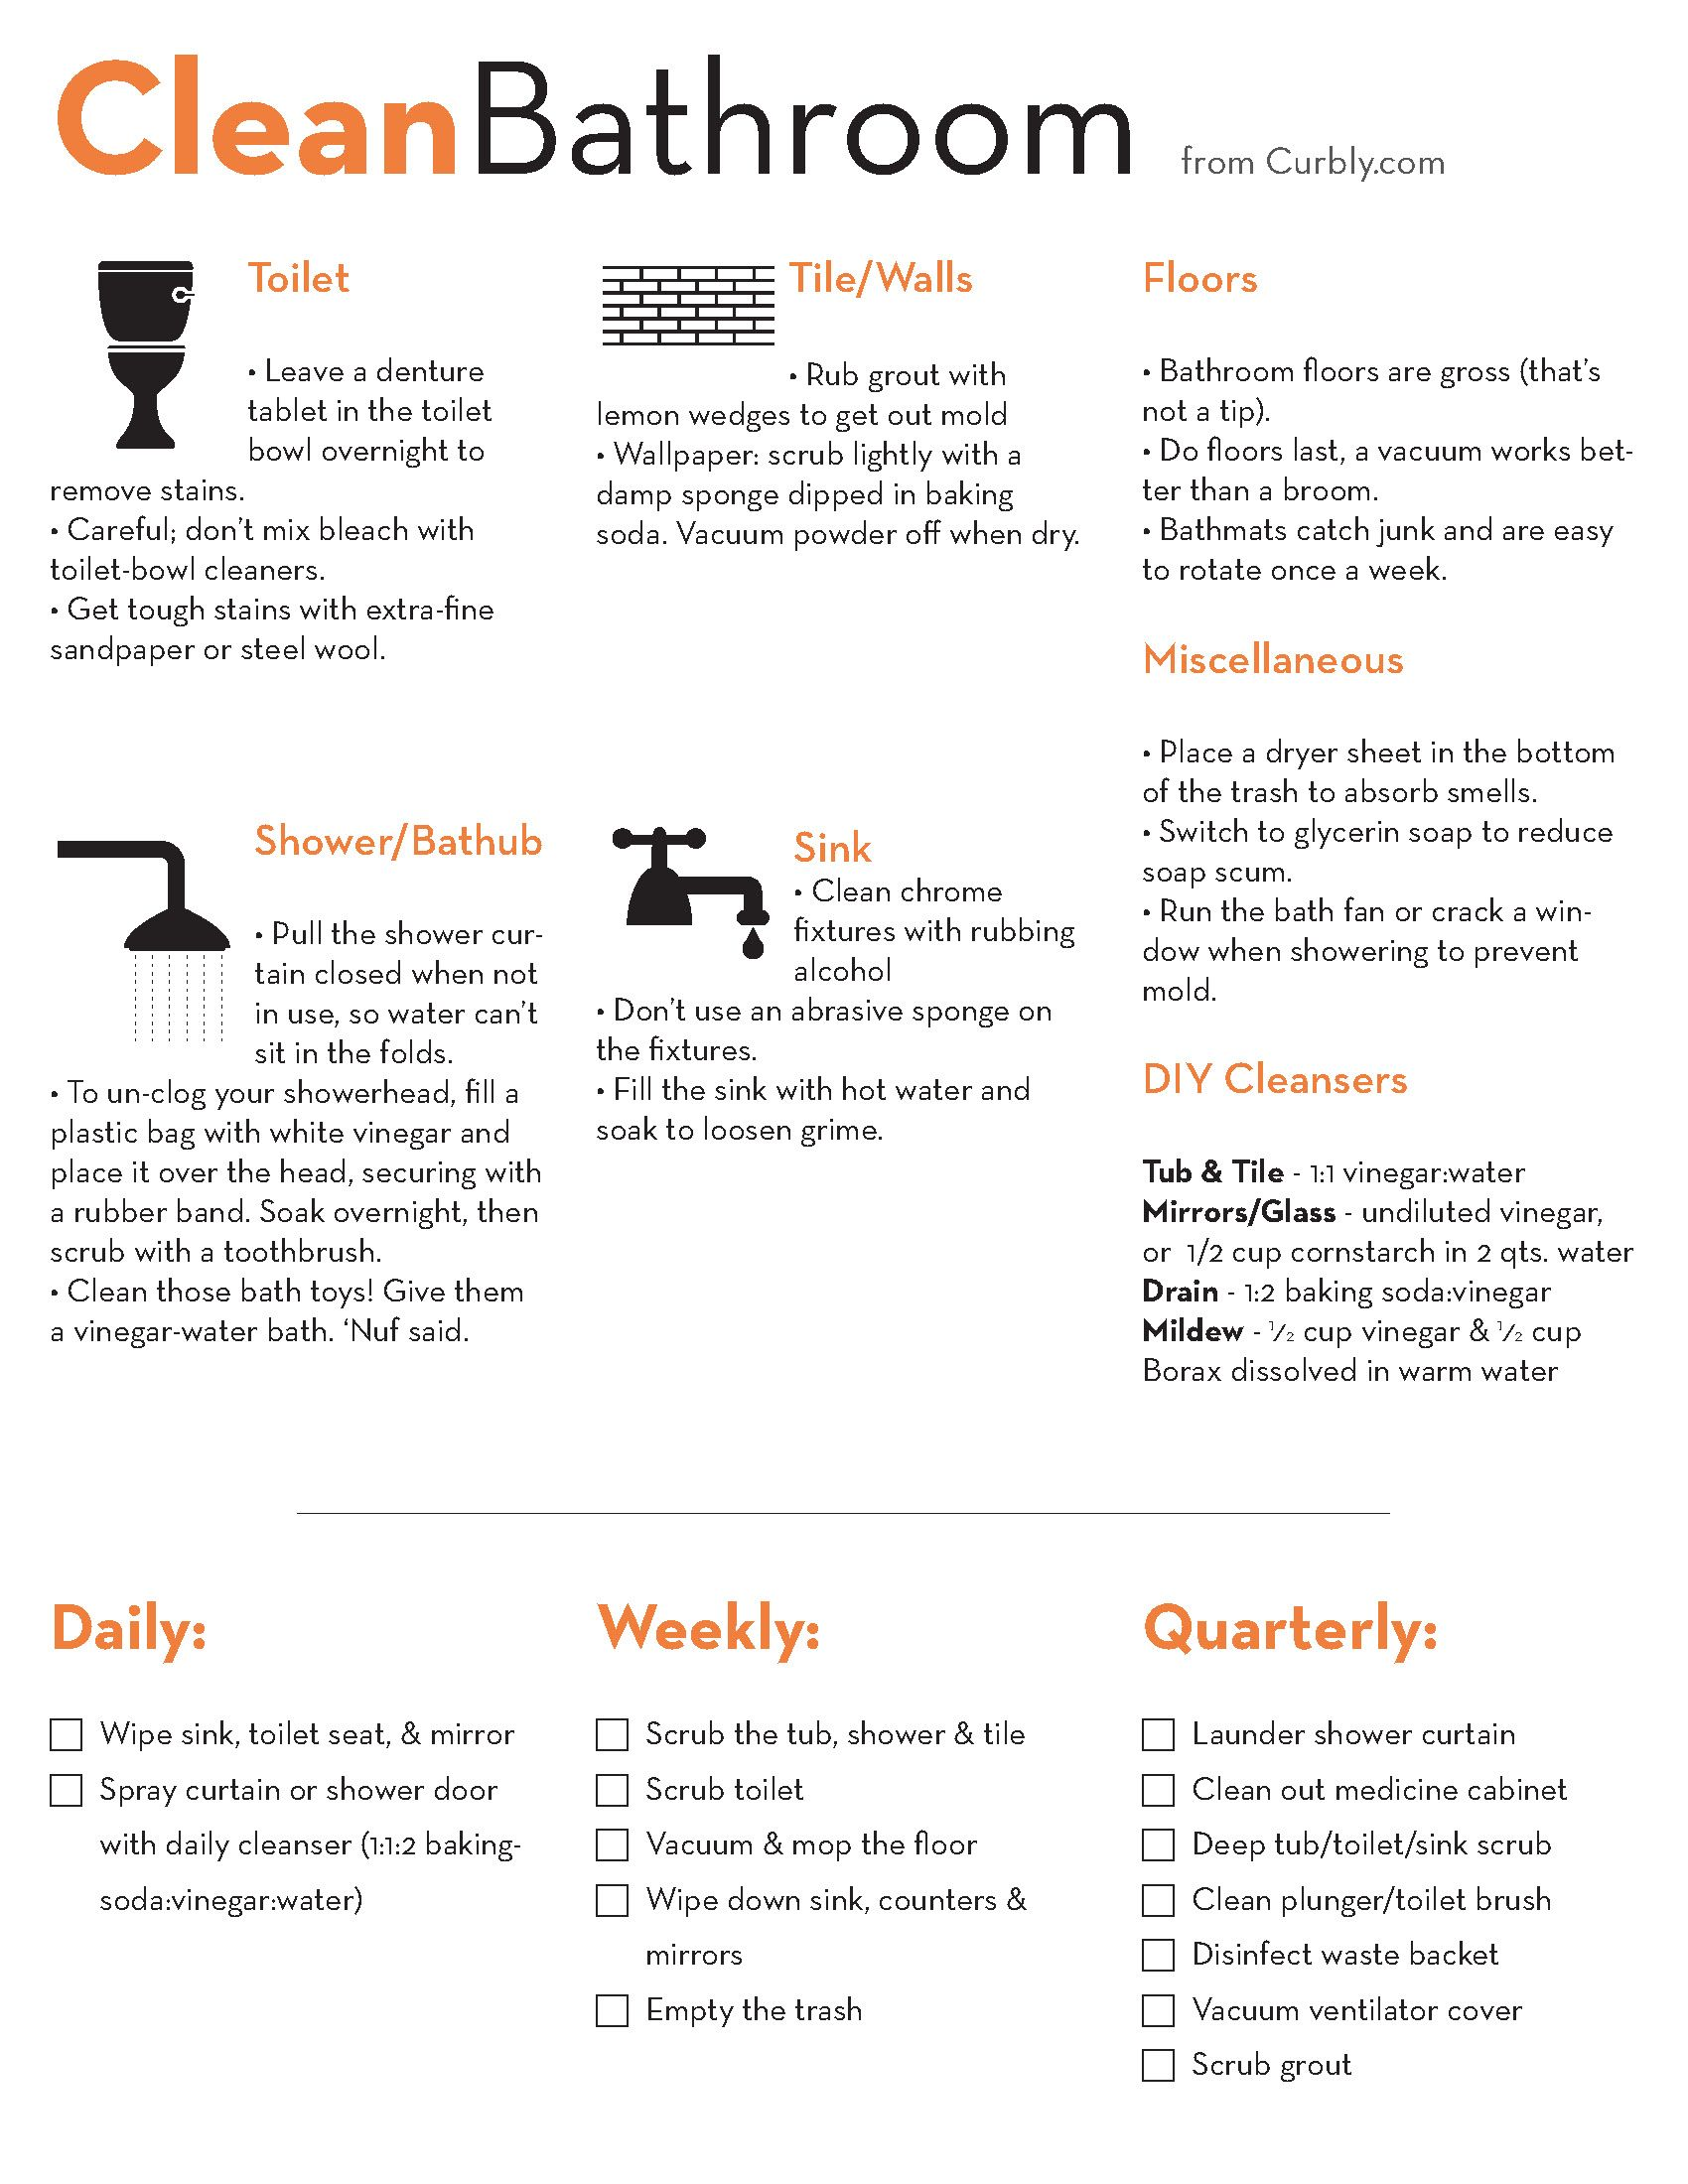 A Clean Bathroom Cheat Sheet From Curbly Bathroom Cleaning Cleaning Hacks Cleaning Household